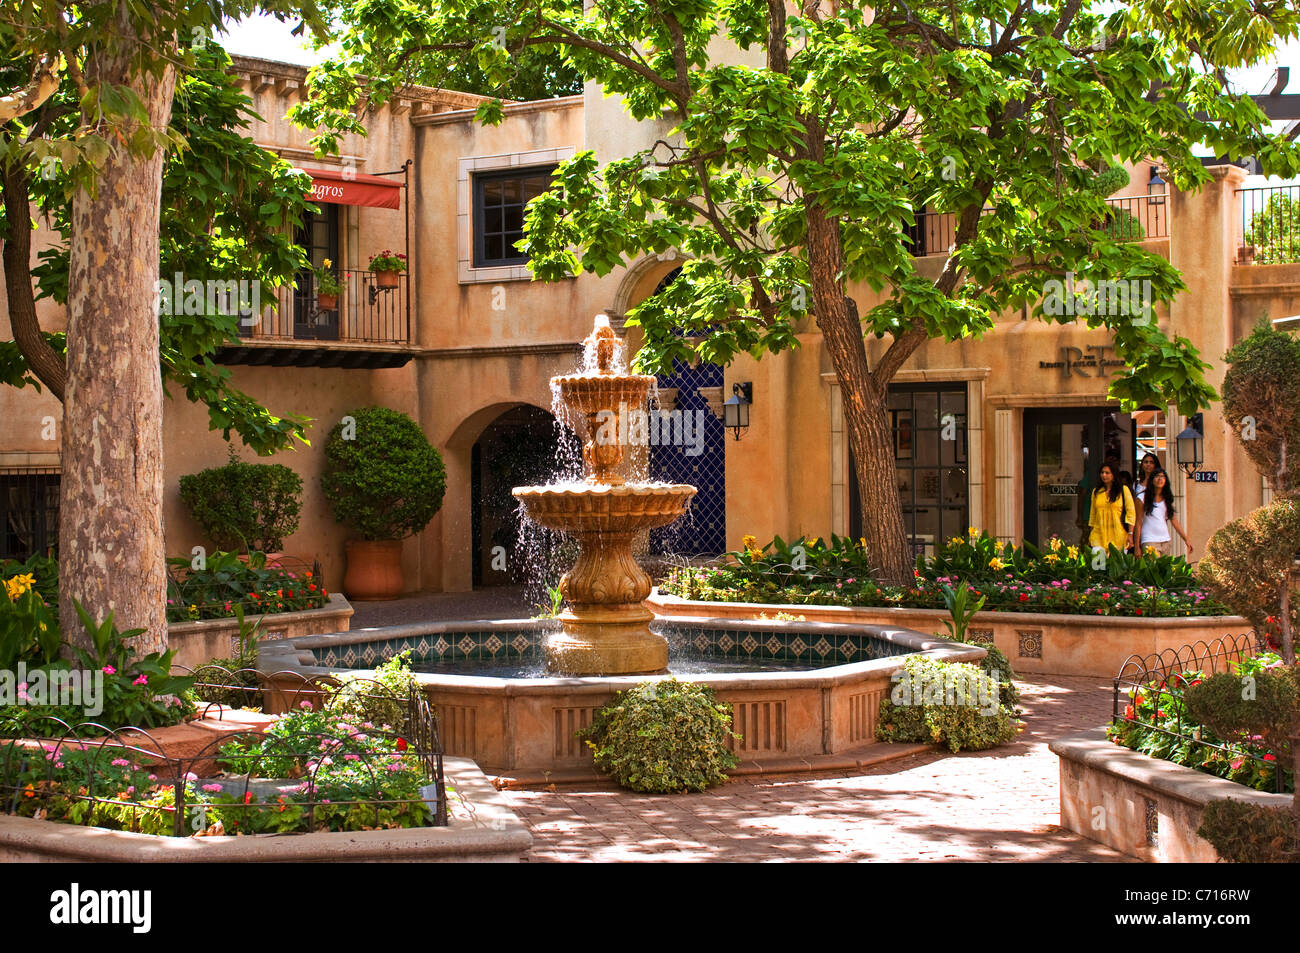 Spanish Style Tiered Fountain Patio Courtyard